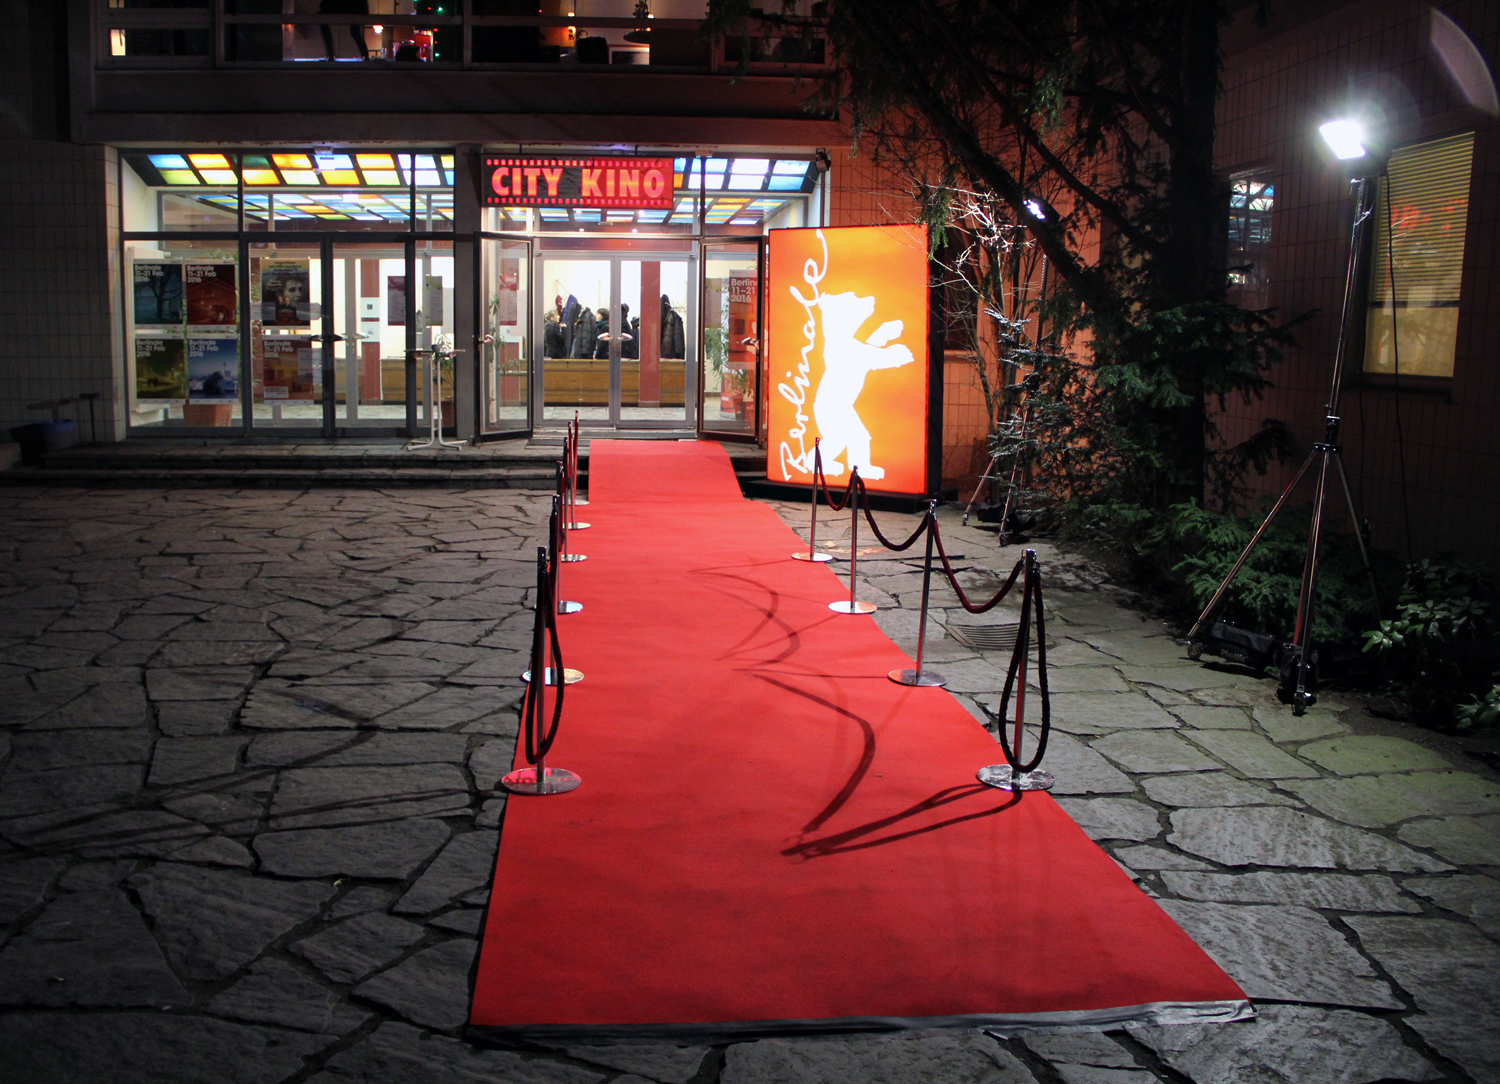 Teppiche Wedding Der Wedding Und Die Berlinale Weddingweiser